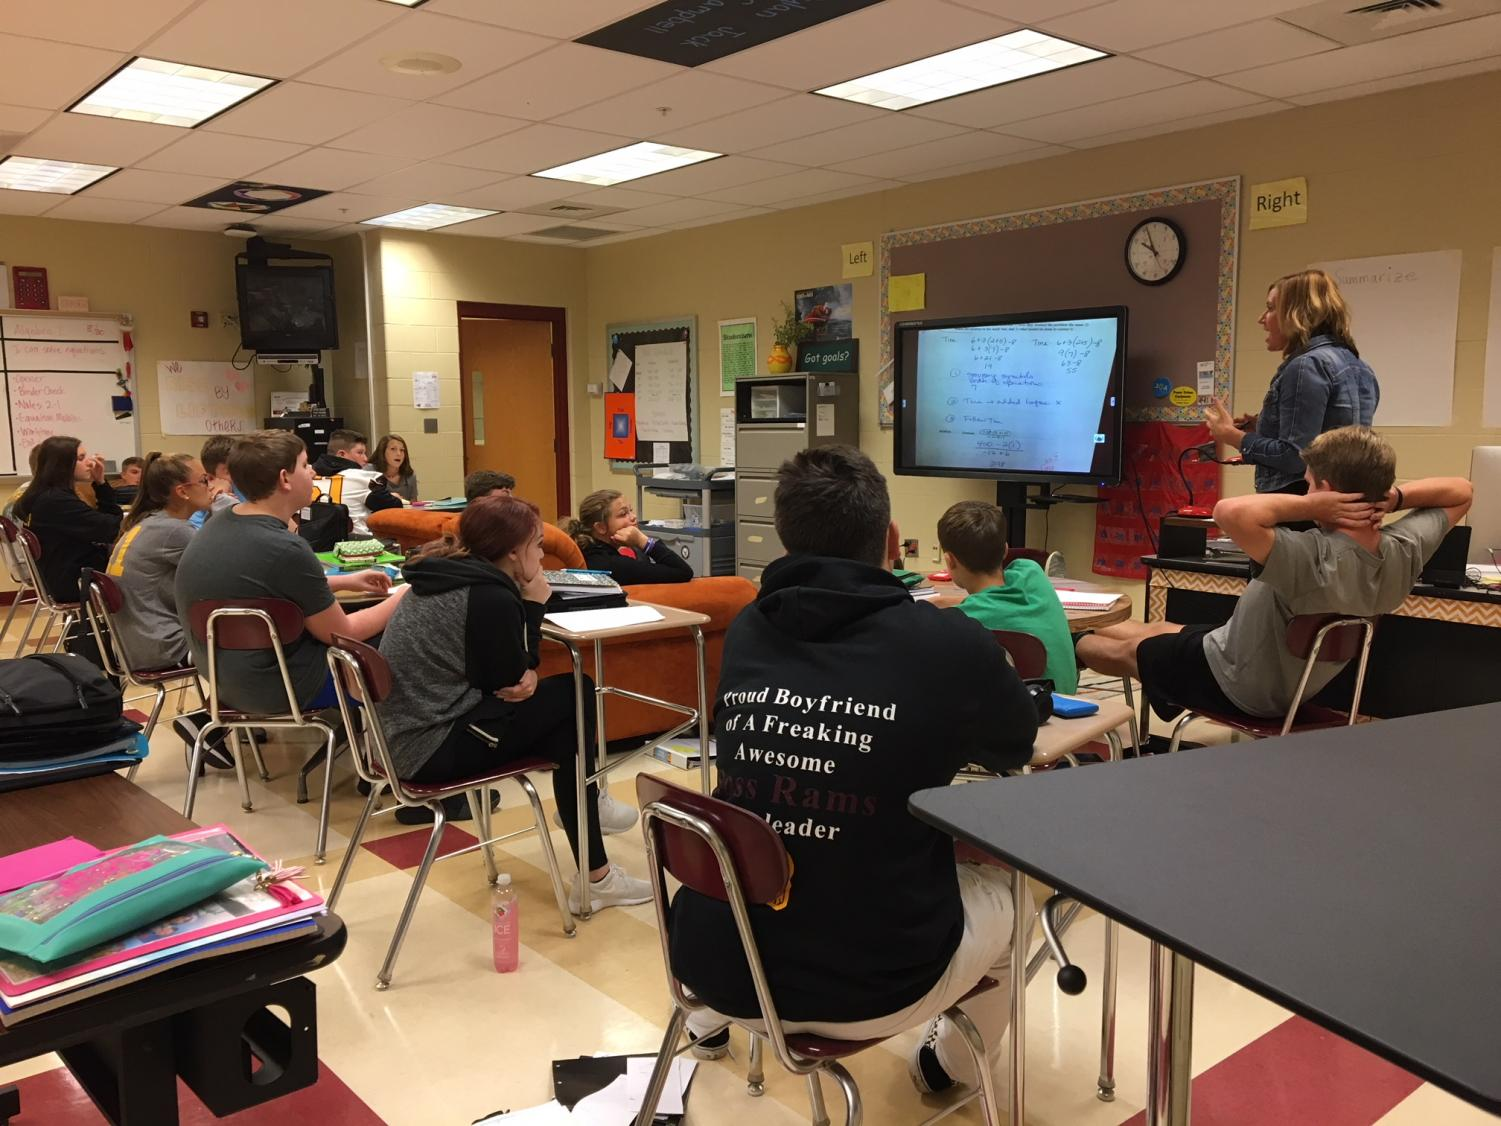 Mrs. Amy Brossart's third block math class hard at work during a lesson, in their choice of seating.